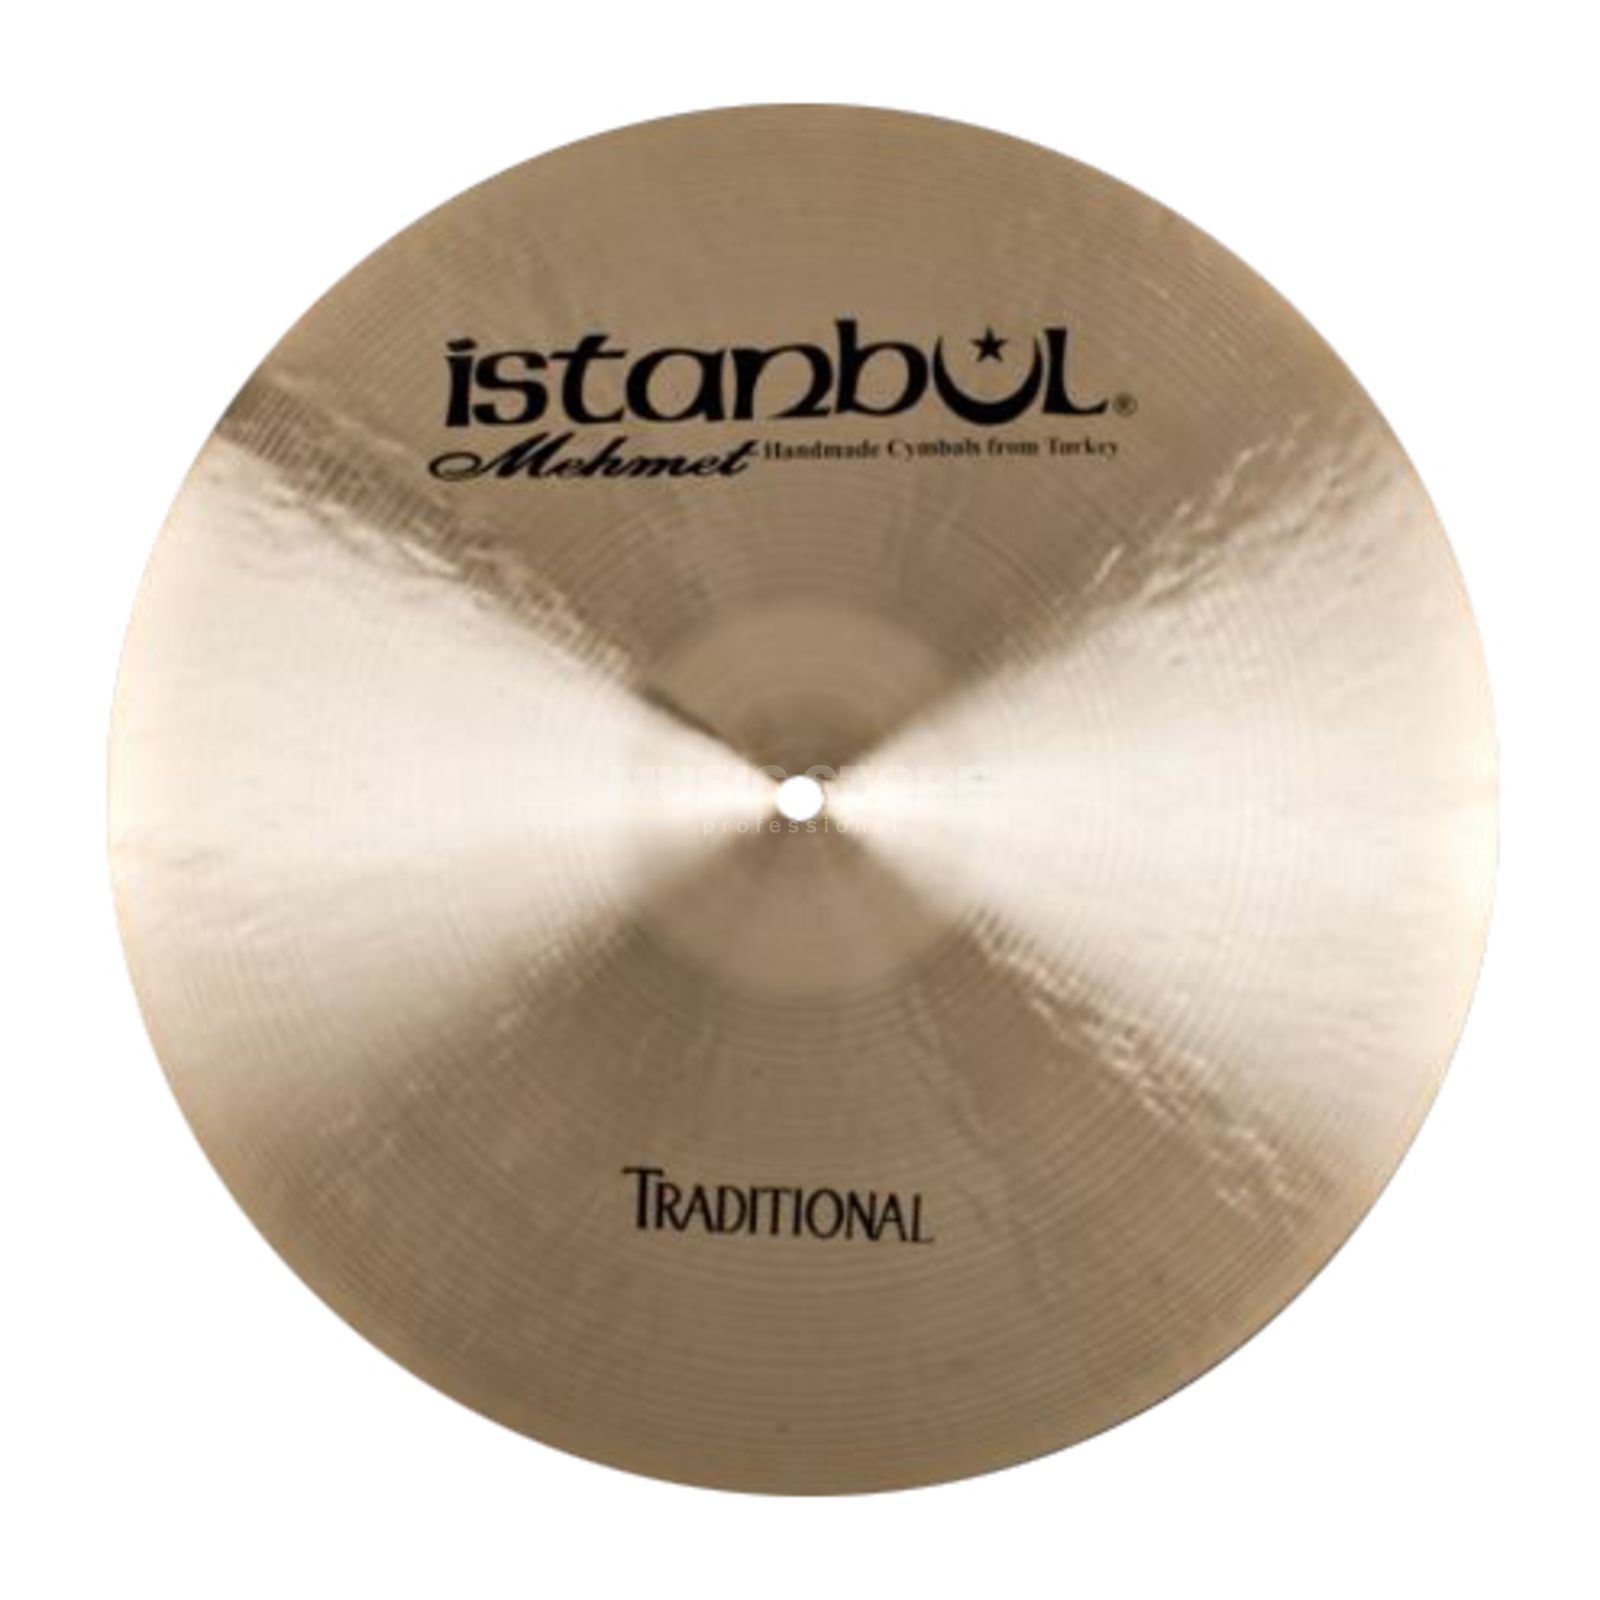 "Istanbul Traditional Medium Crash 18"", CM19 Product Image"